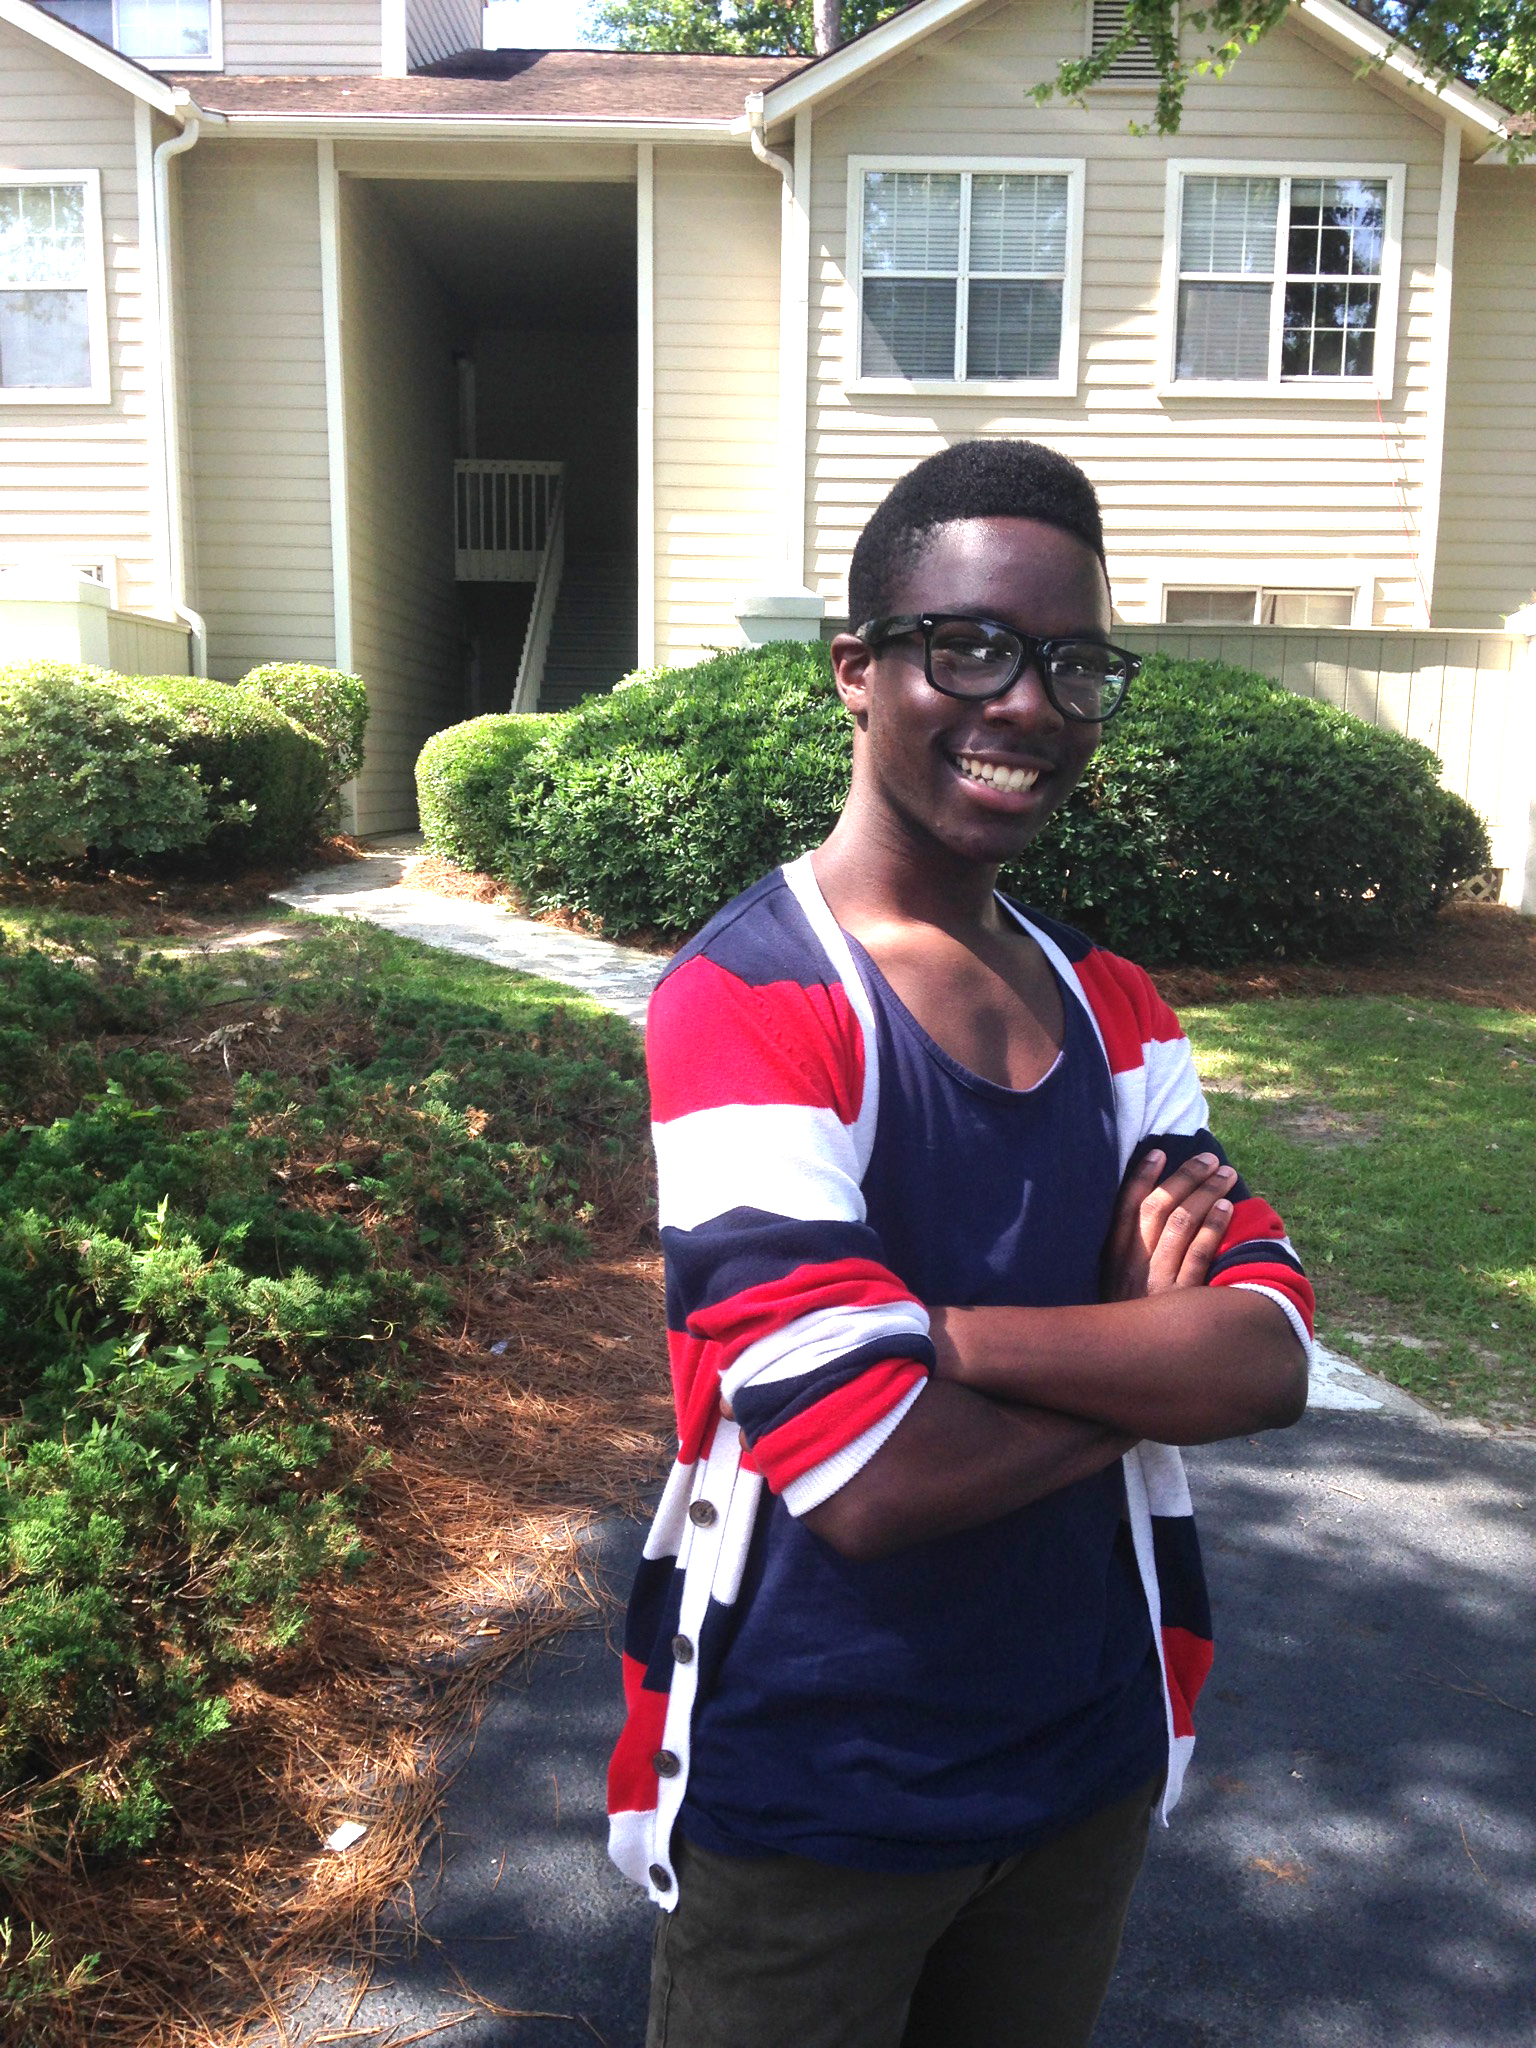 Charleston Teen Reflects On Racism In The Spotlight